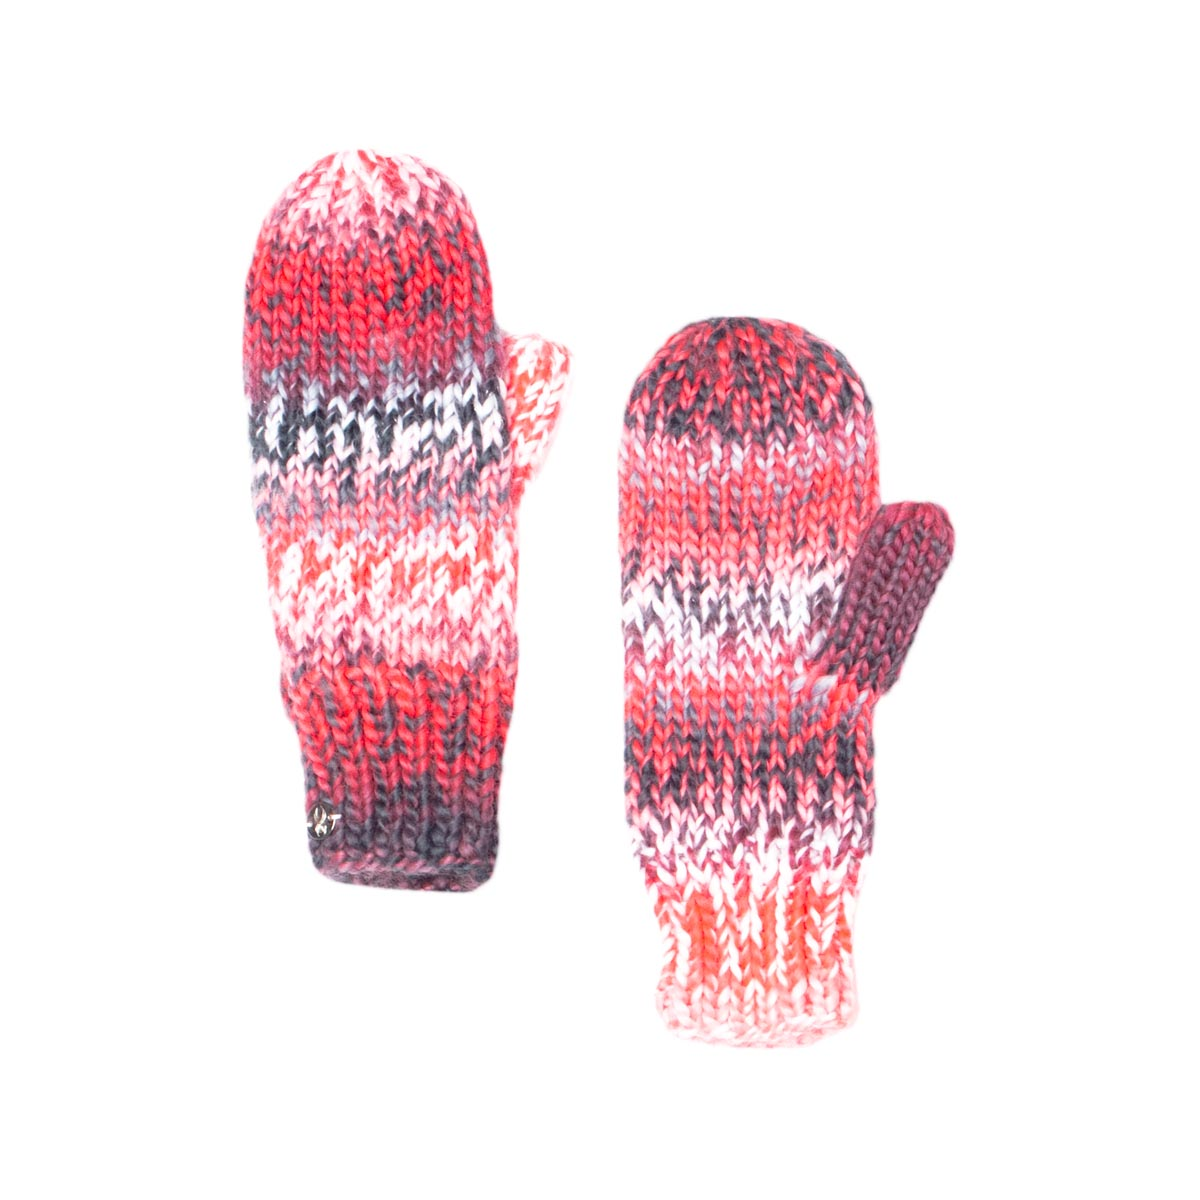 Spyder Women's Twisty Mitten